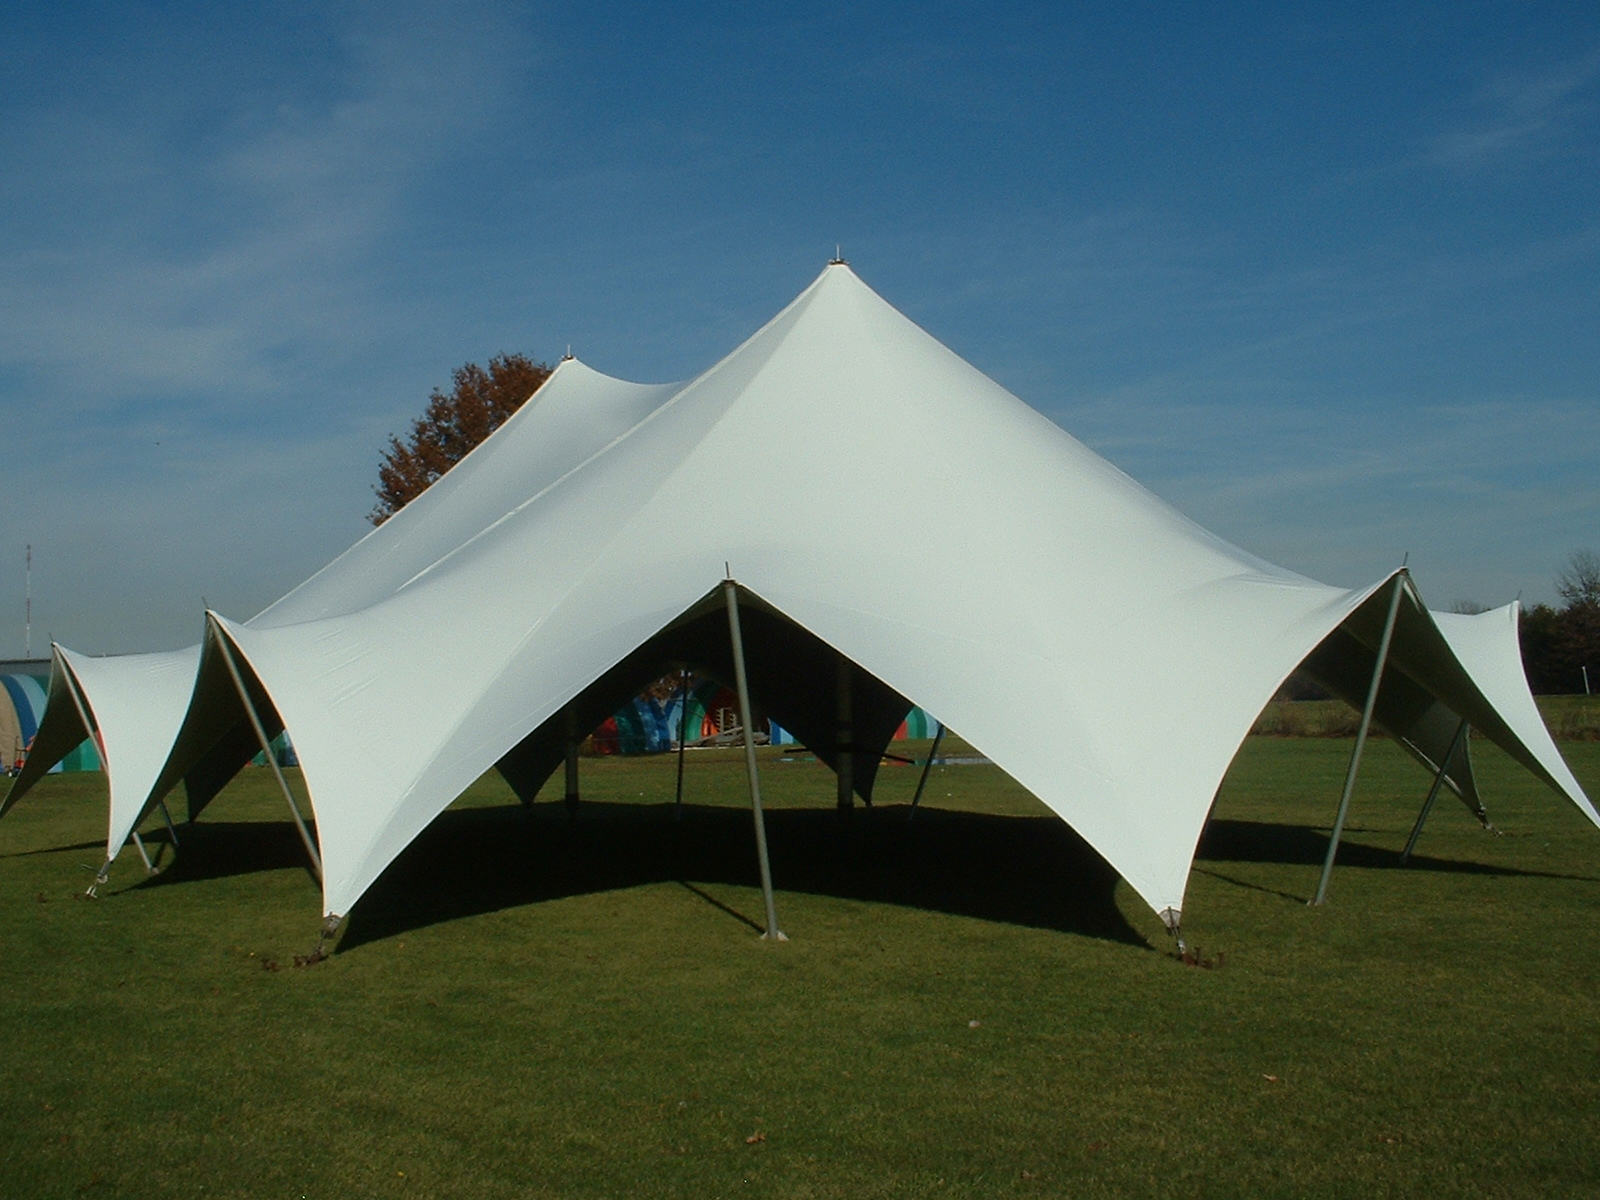 USED Tents On Sale From ARMBRUSTER